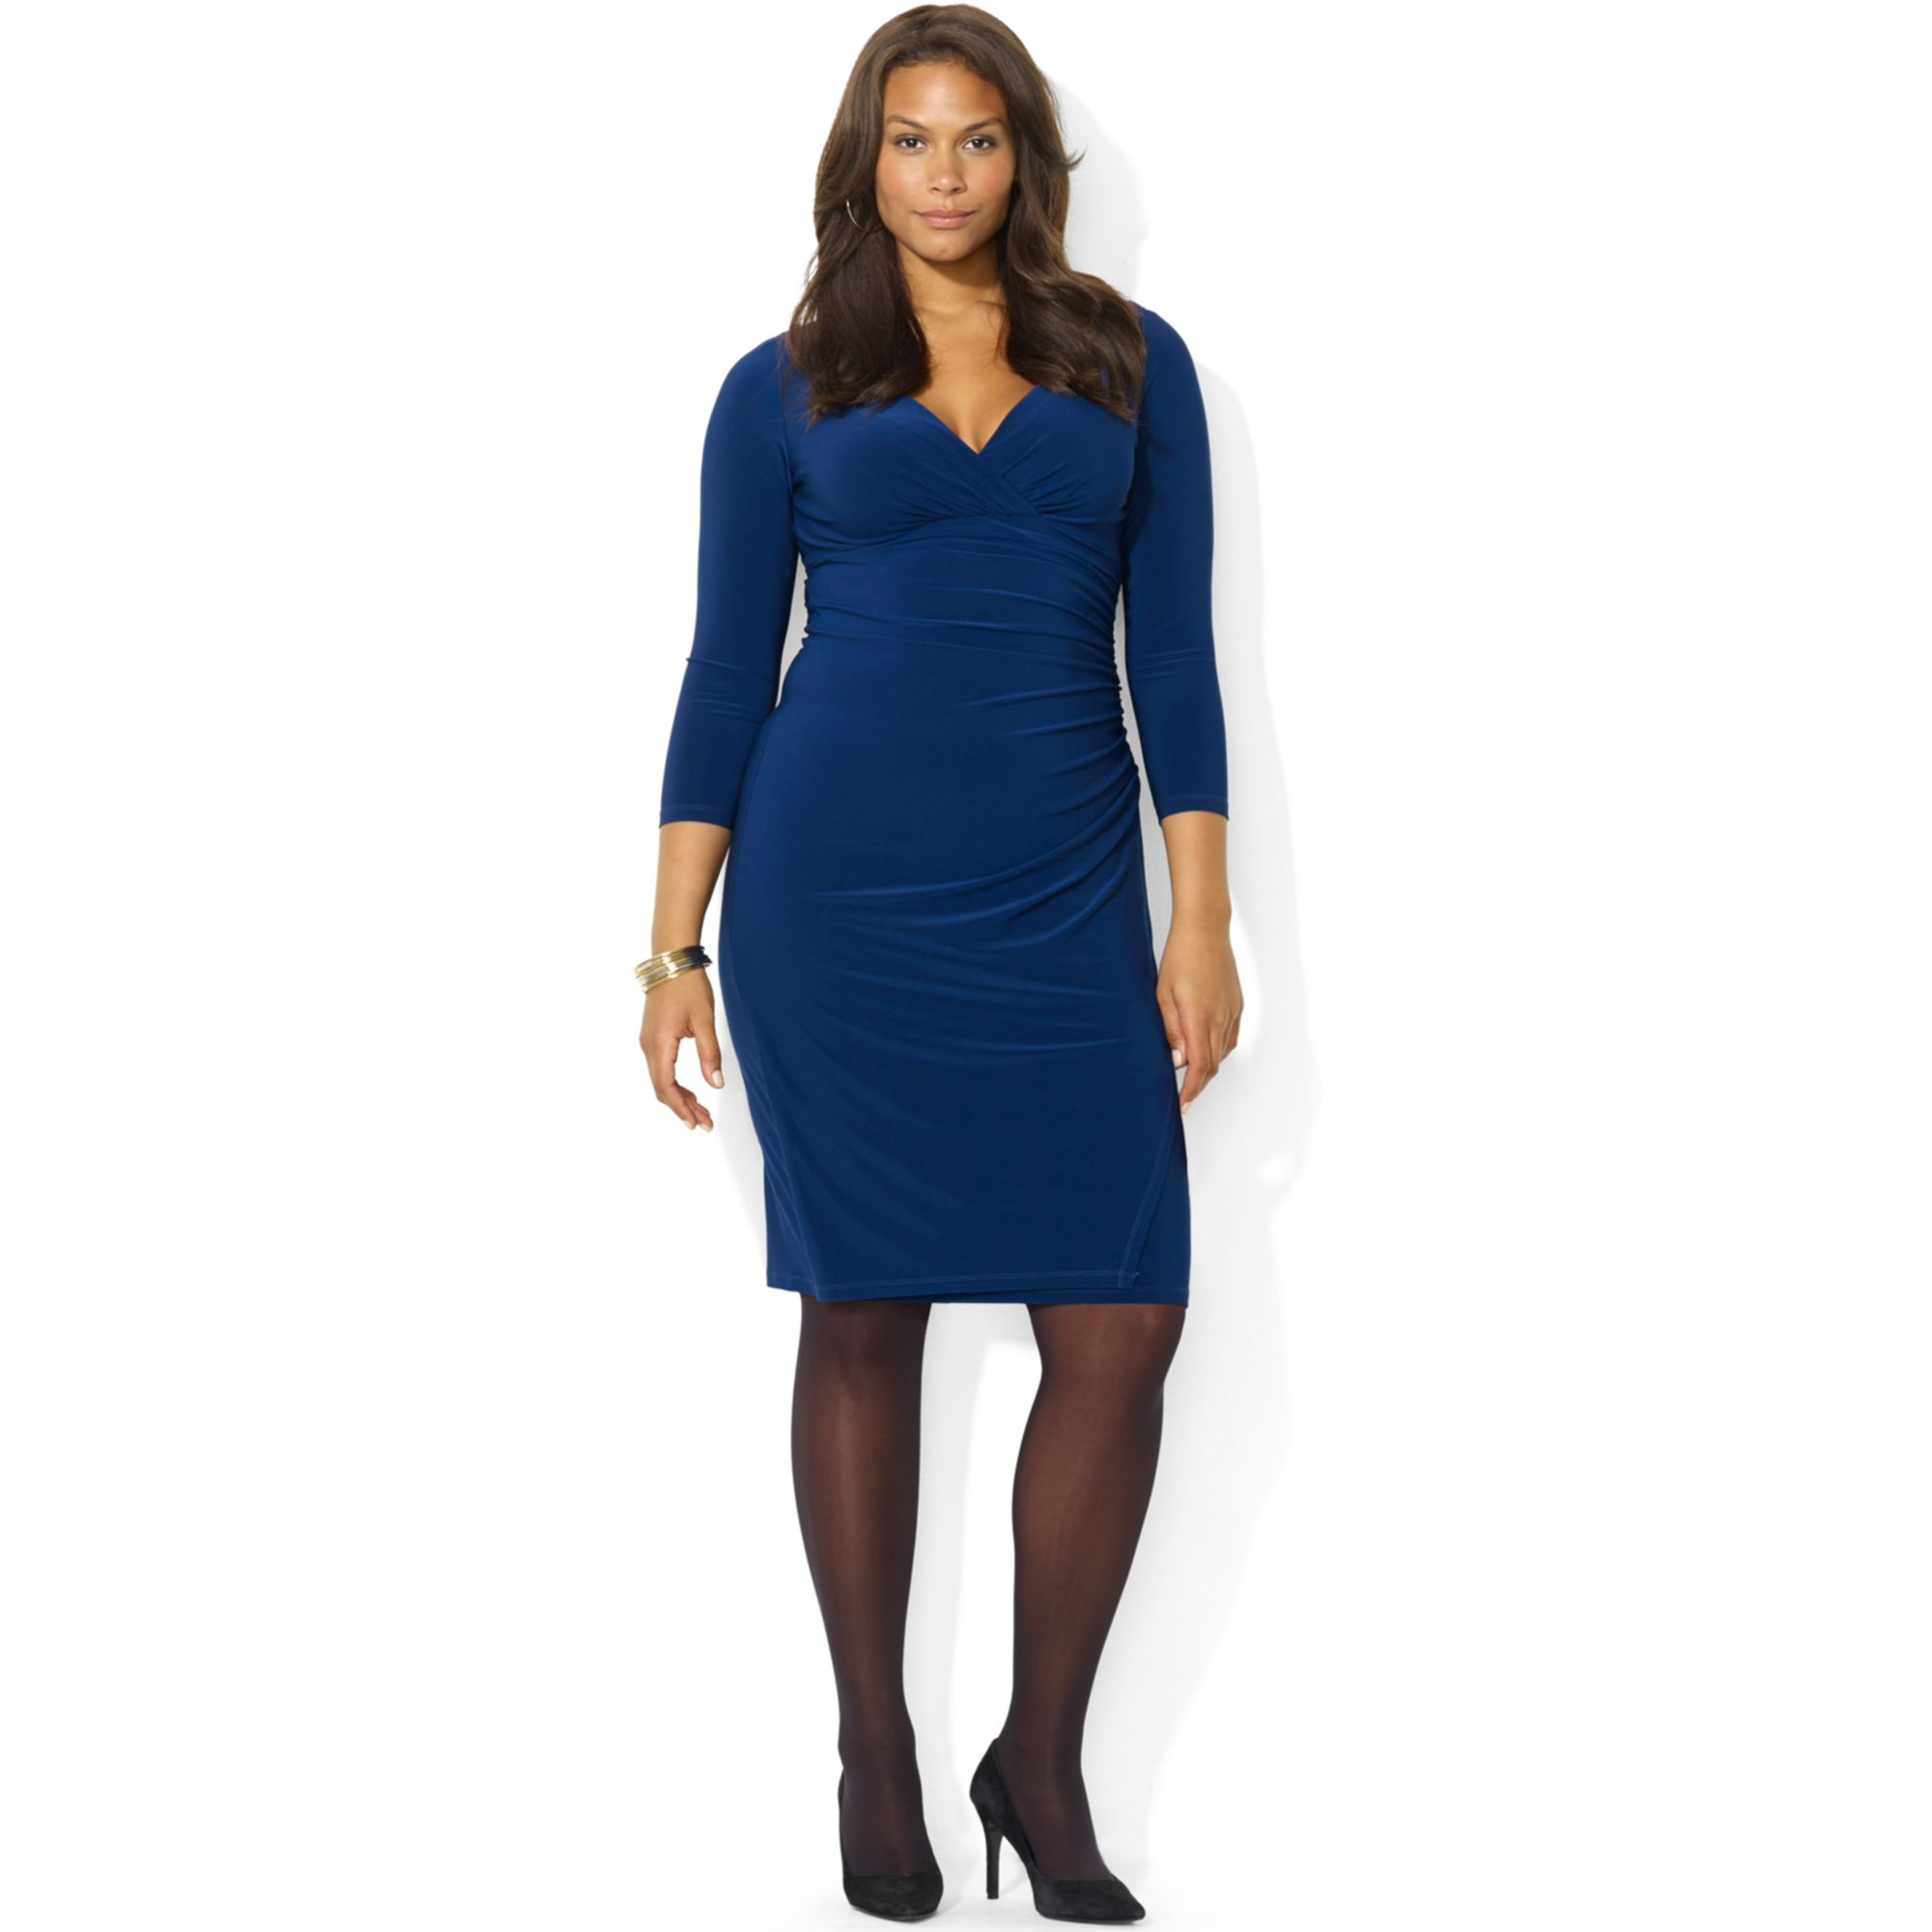 Plus size clothing stores in nashville tn Cheap clothing stores